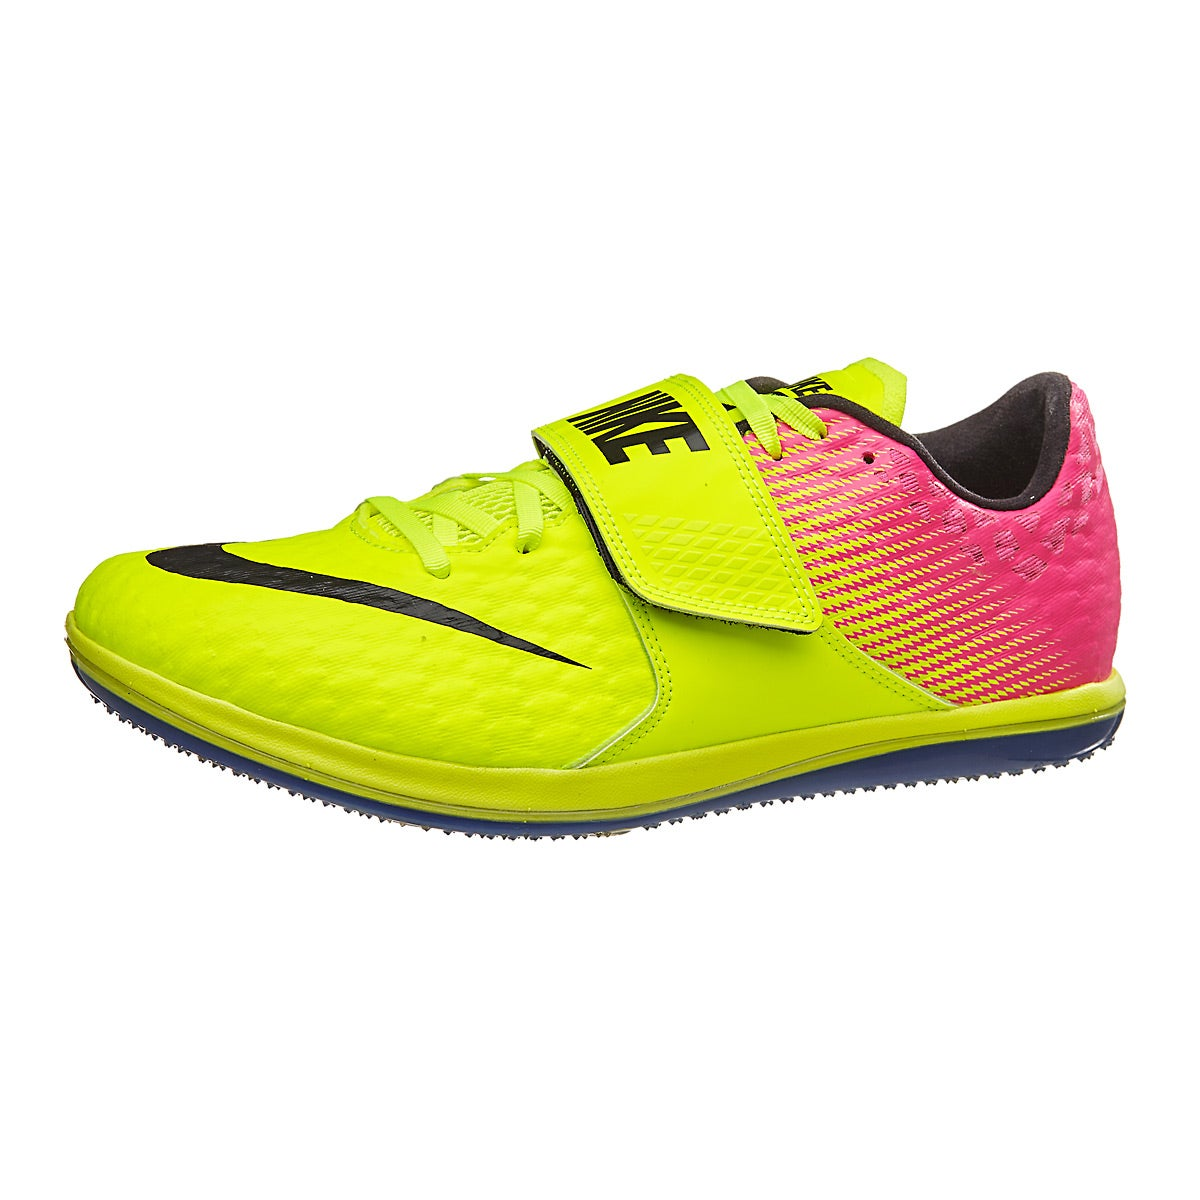 Nike Zoom High Jump Elite Spikes | The River City News